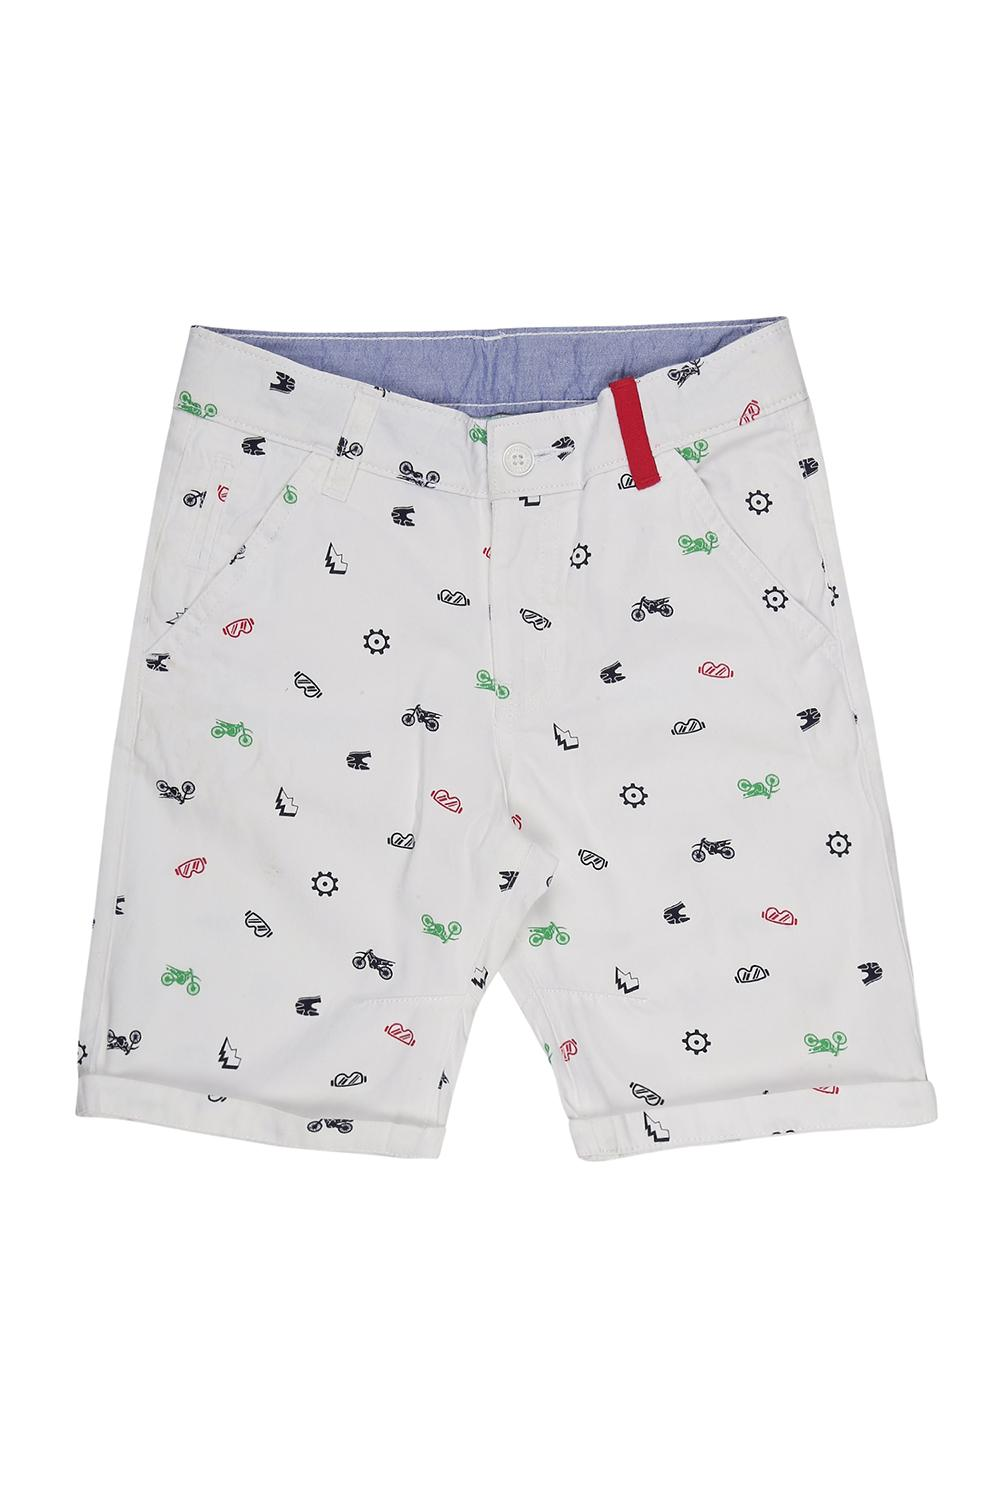 303e861763 Pantaloons Junior Shorts & Bermudas, Boys Printed Casual Shorts for ...